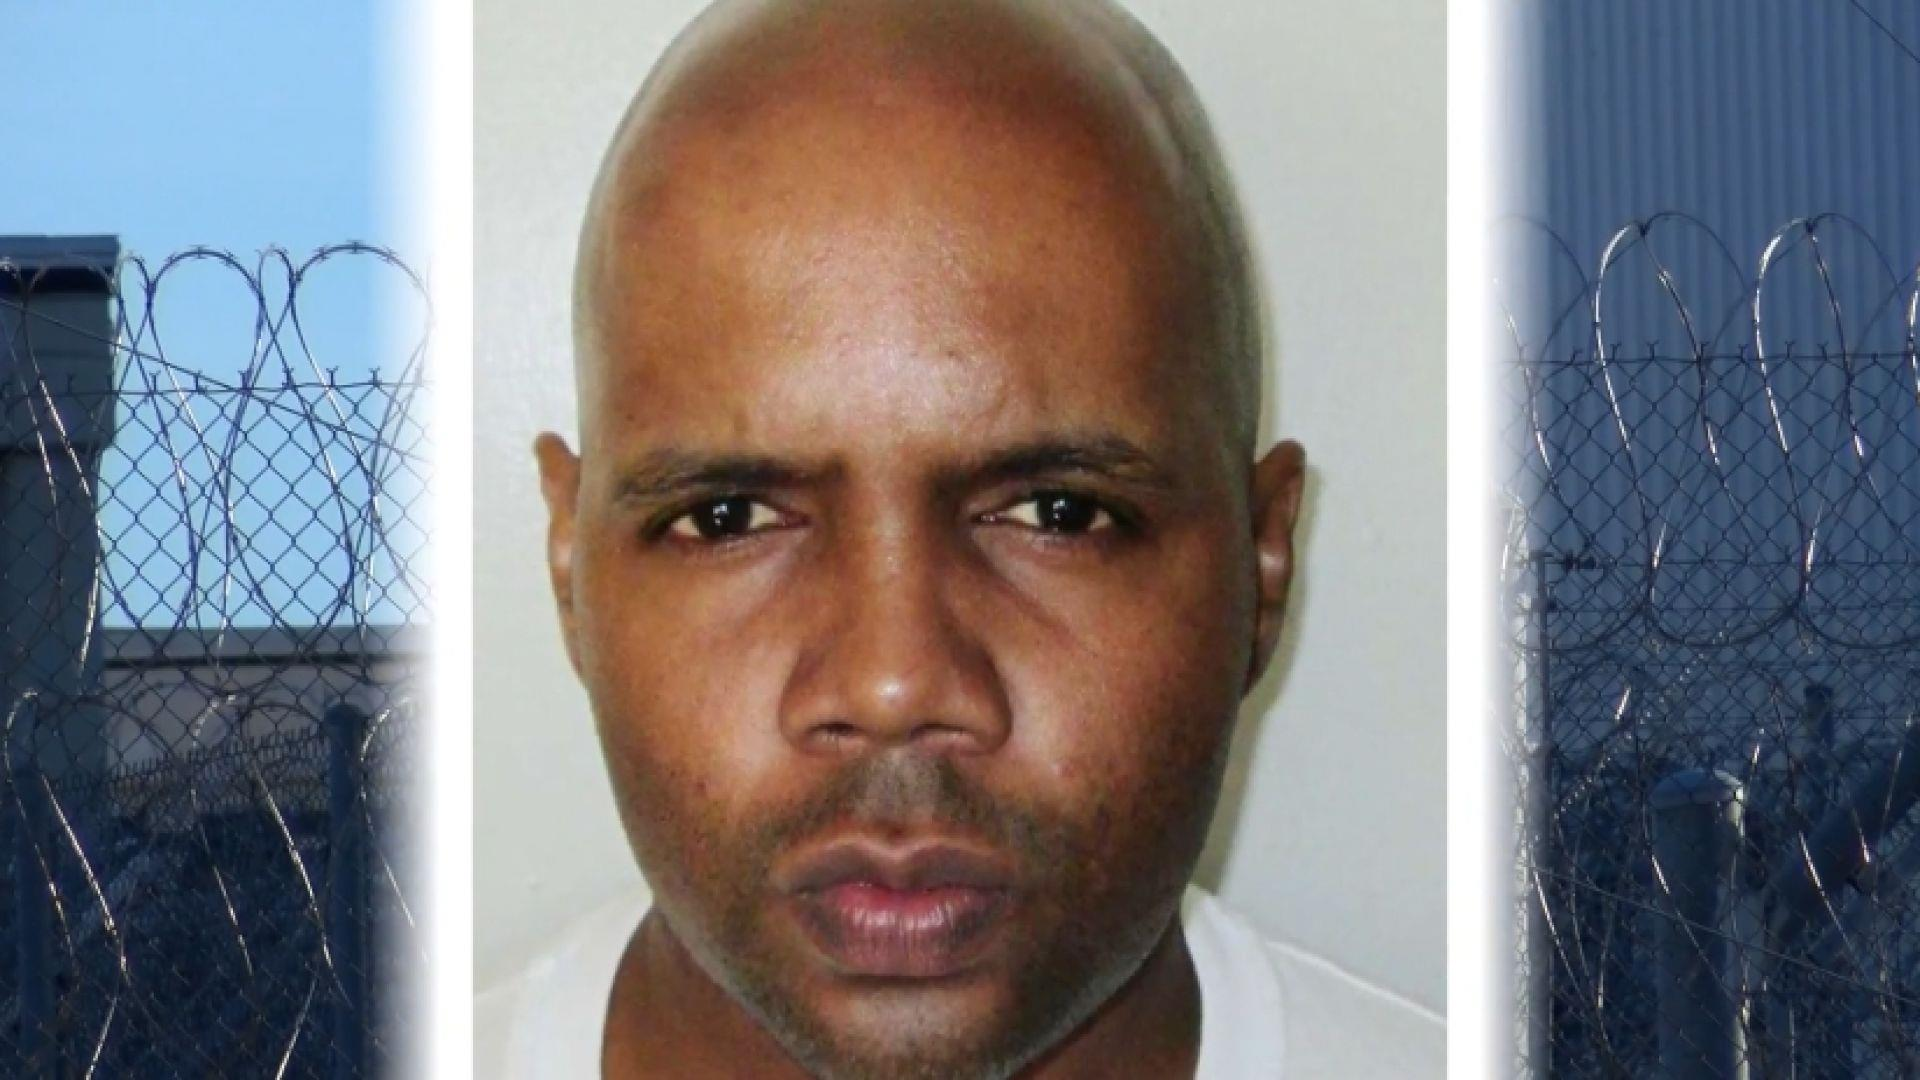 Alabama Inmate, Defiant Before His Execution